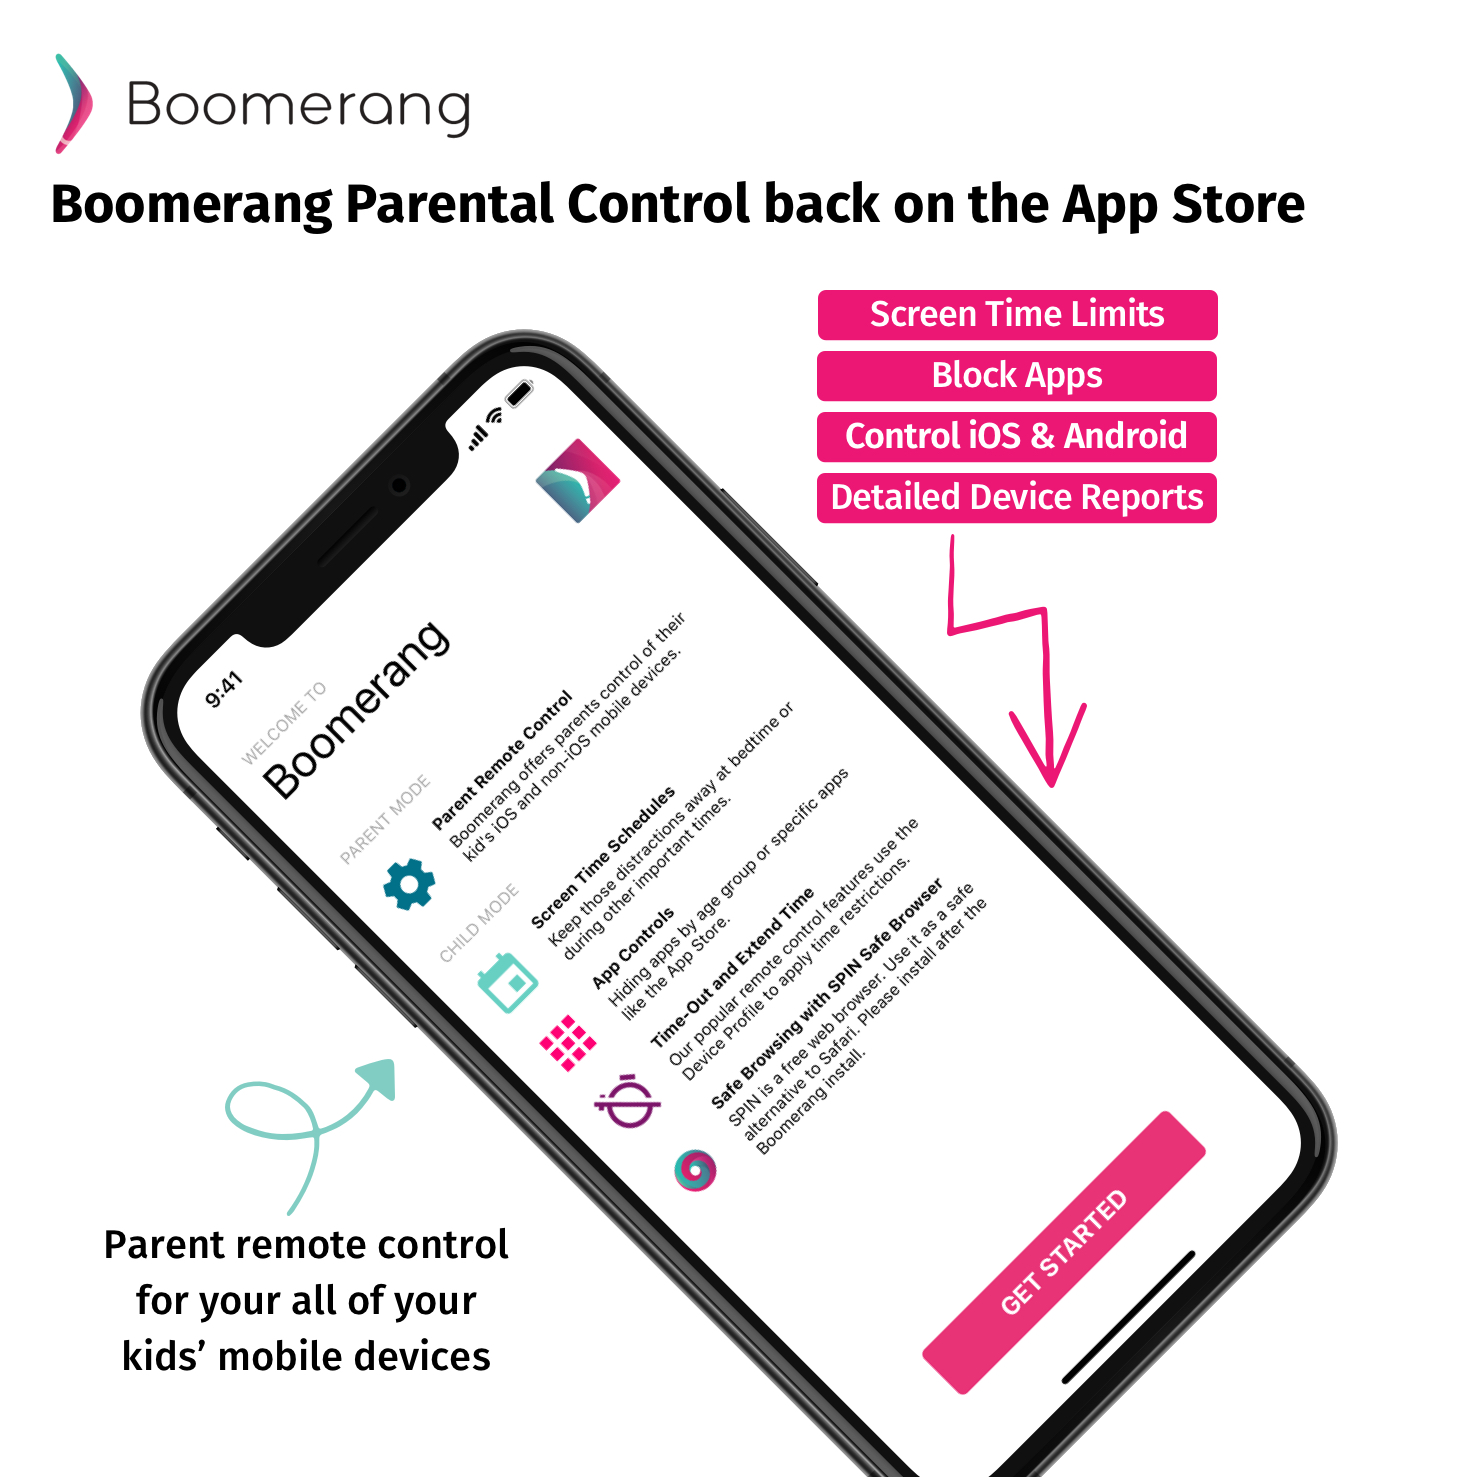 Boomerang Parental Control back on App Store